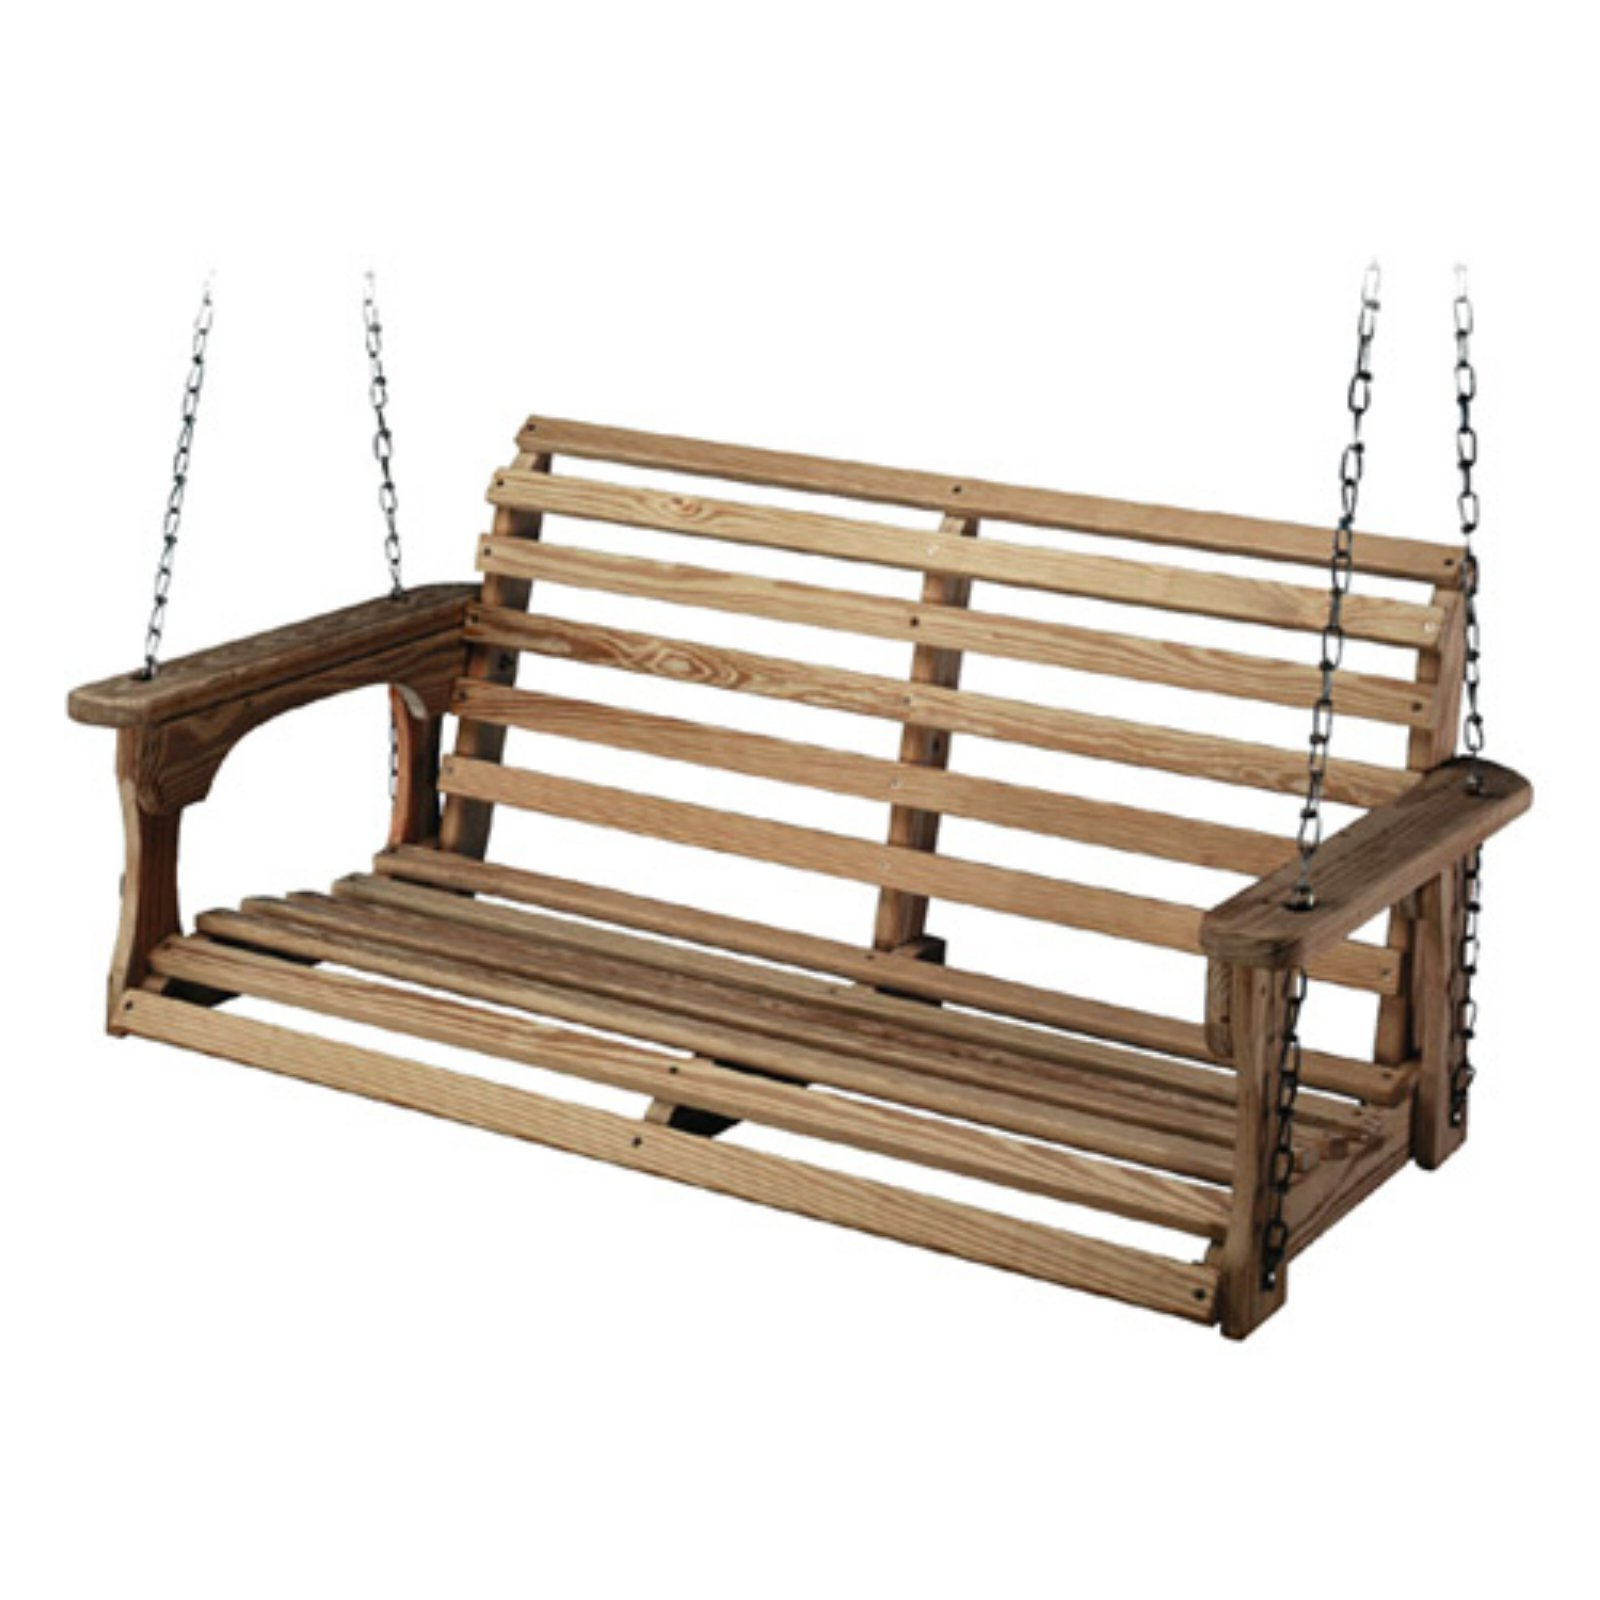 Beecham Swing Co. Roll Back Treated Wood Porch Swing In 2019 Within Famous Fordyce Porch Swings (Gallery 8 of 25)